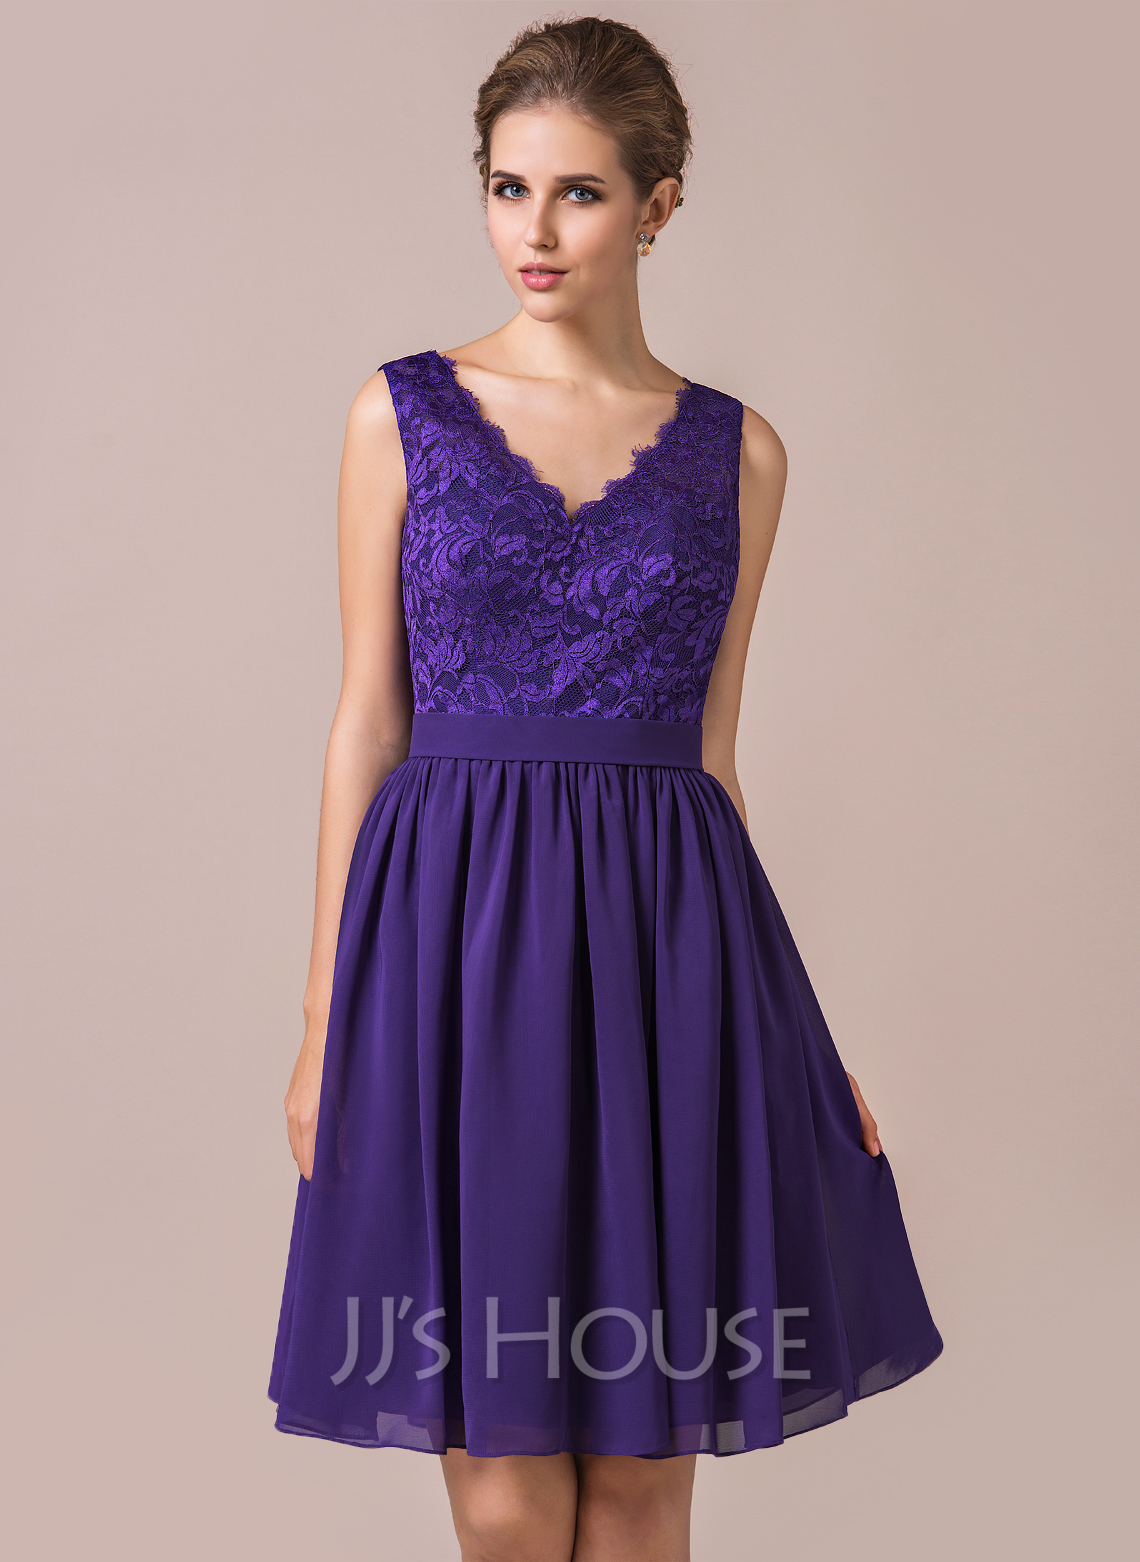 3dbe6cc152 A-Line Princess V-neck Knee-Length Chiffon Lace Bridesmaid Dress. Loading  zoom